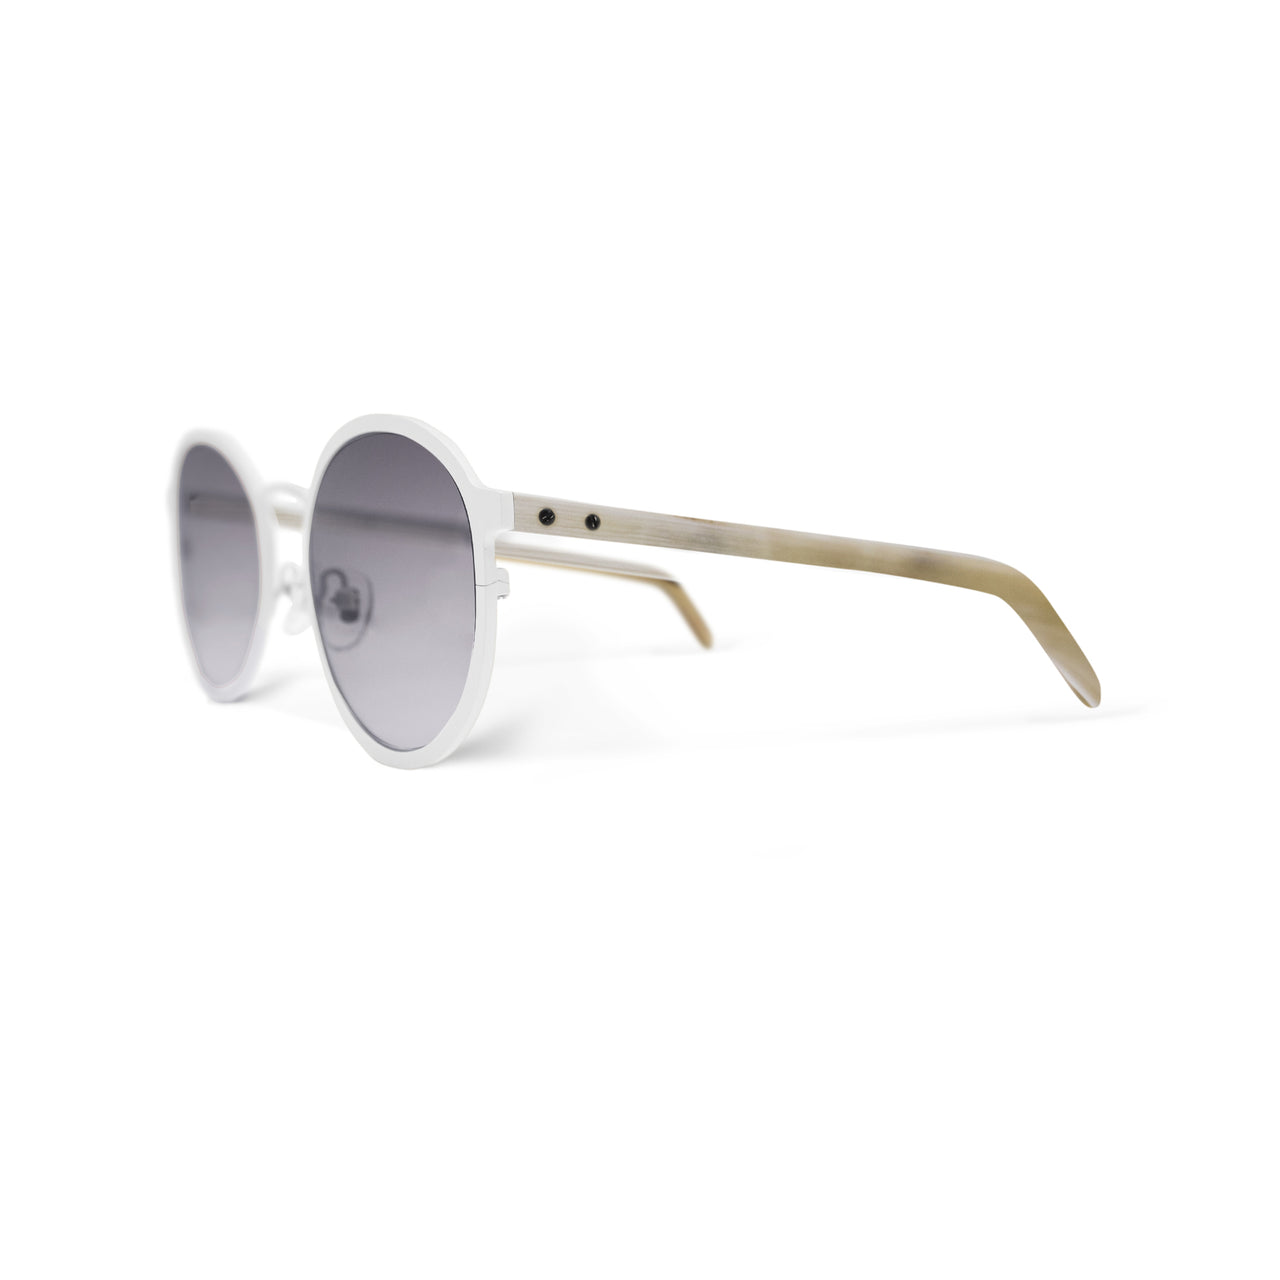 Metal / Horn. Porcelain / Oxen. Smoke Lens. - BLYSZAK eyewear eyewear - eyewear, optical, sunglasses